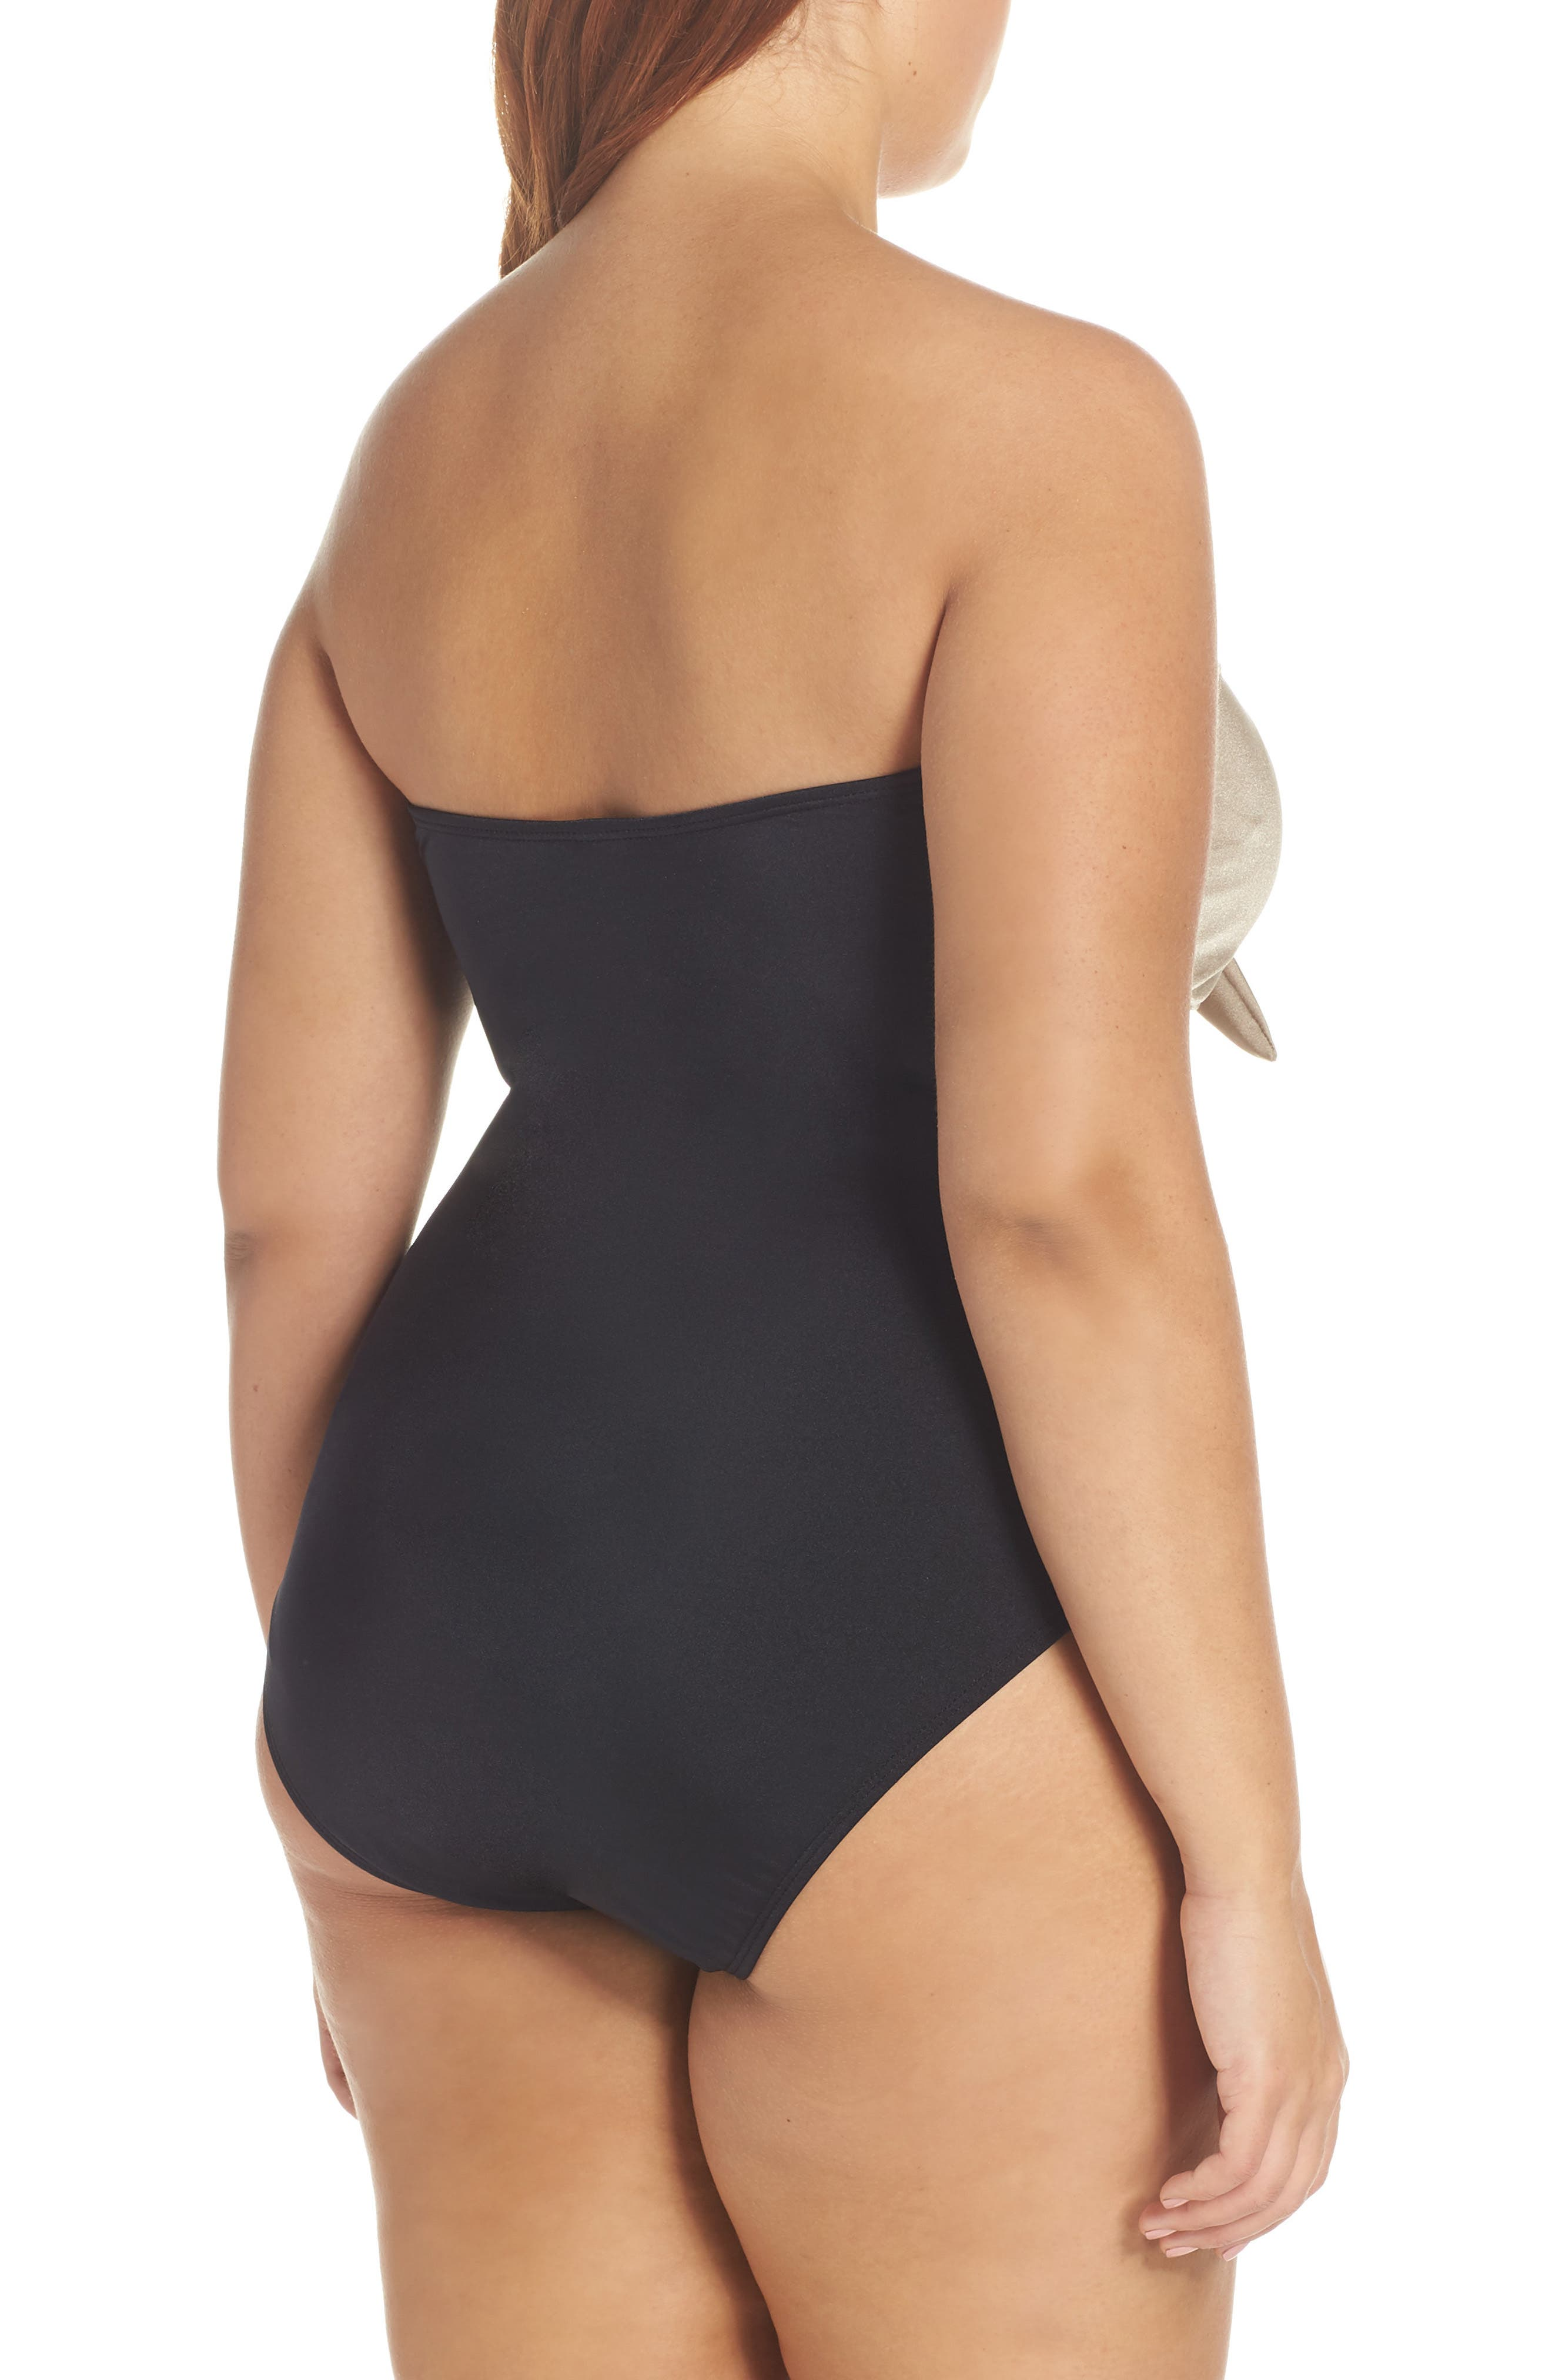 Glam Nights One-Piece Swimsuit,                             Alternate thumbnail 10, color,                             TAN MINK/ BLACK